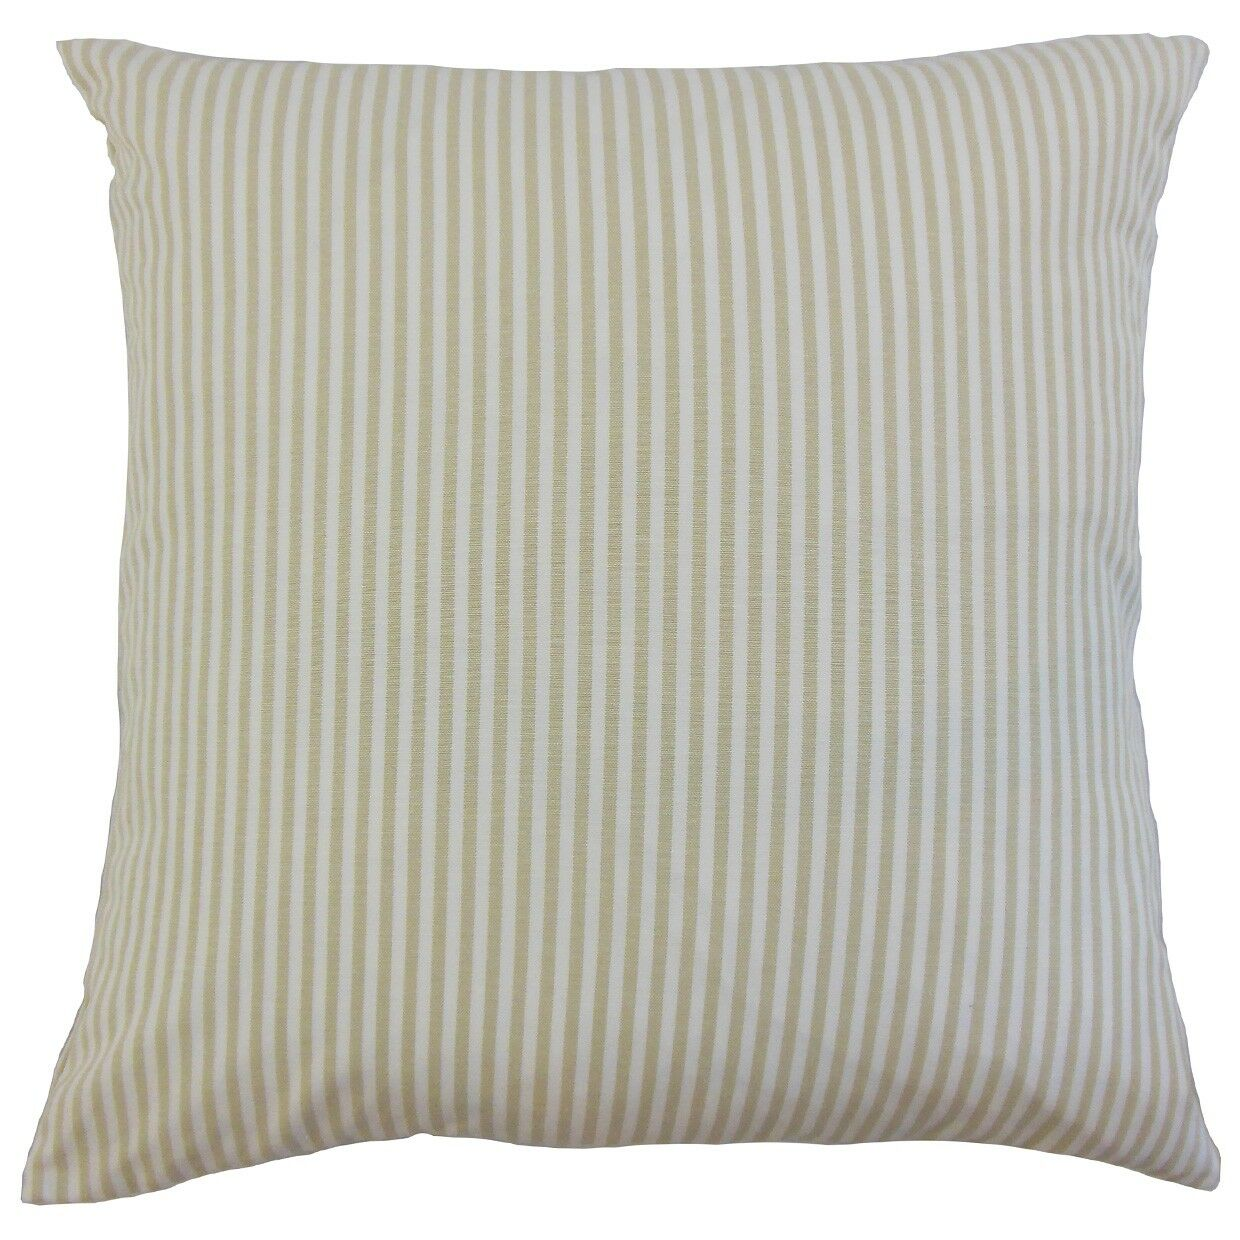 Melinda Stripes Bedding Sham Size: King, Color: Beige